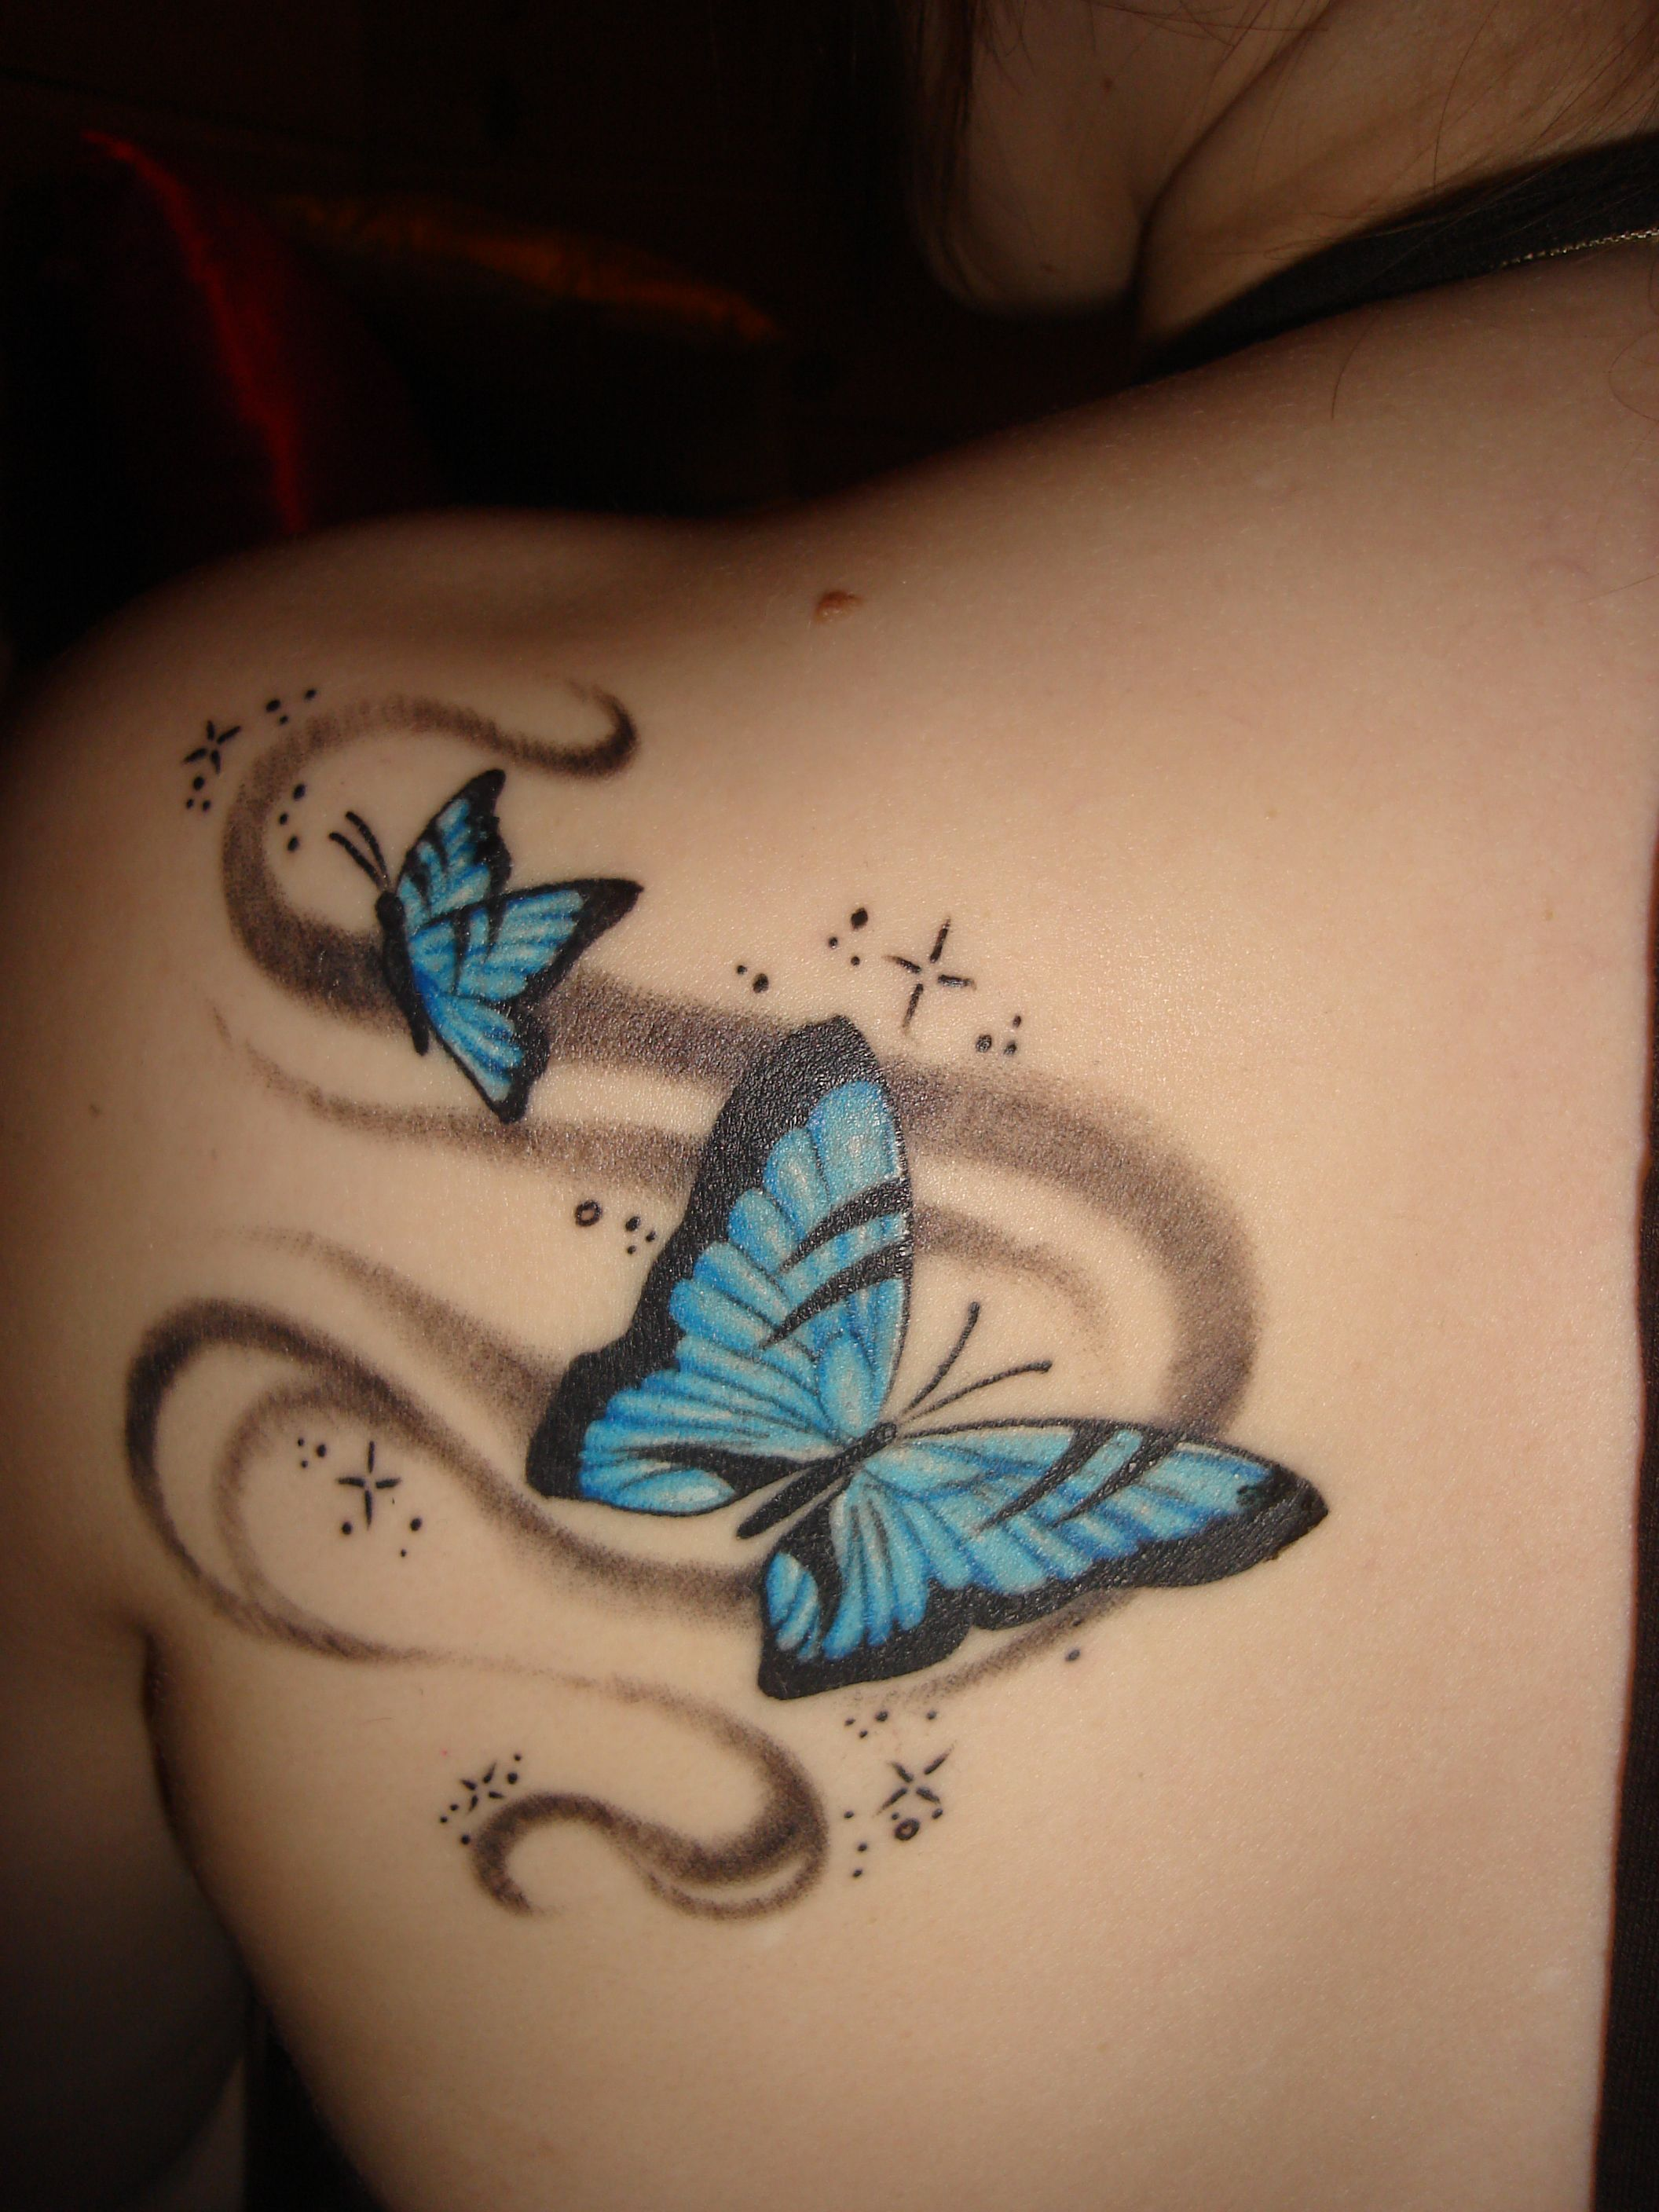 Girl tattoo ideas butterfly butterfly tattoo meanings and design ideas  tattoos  pinterest